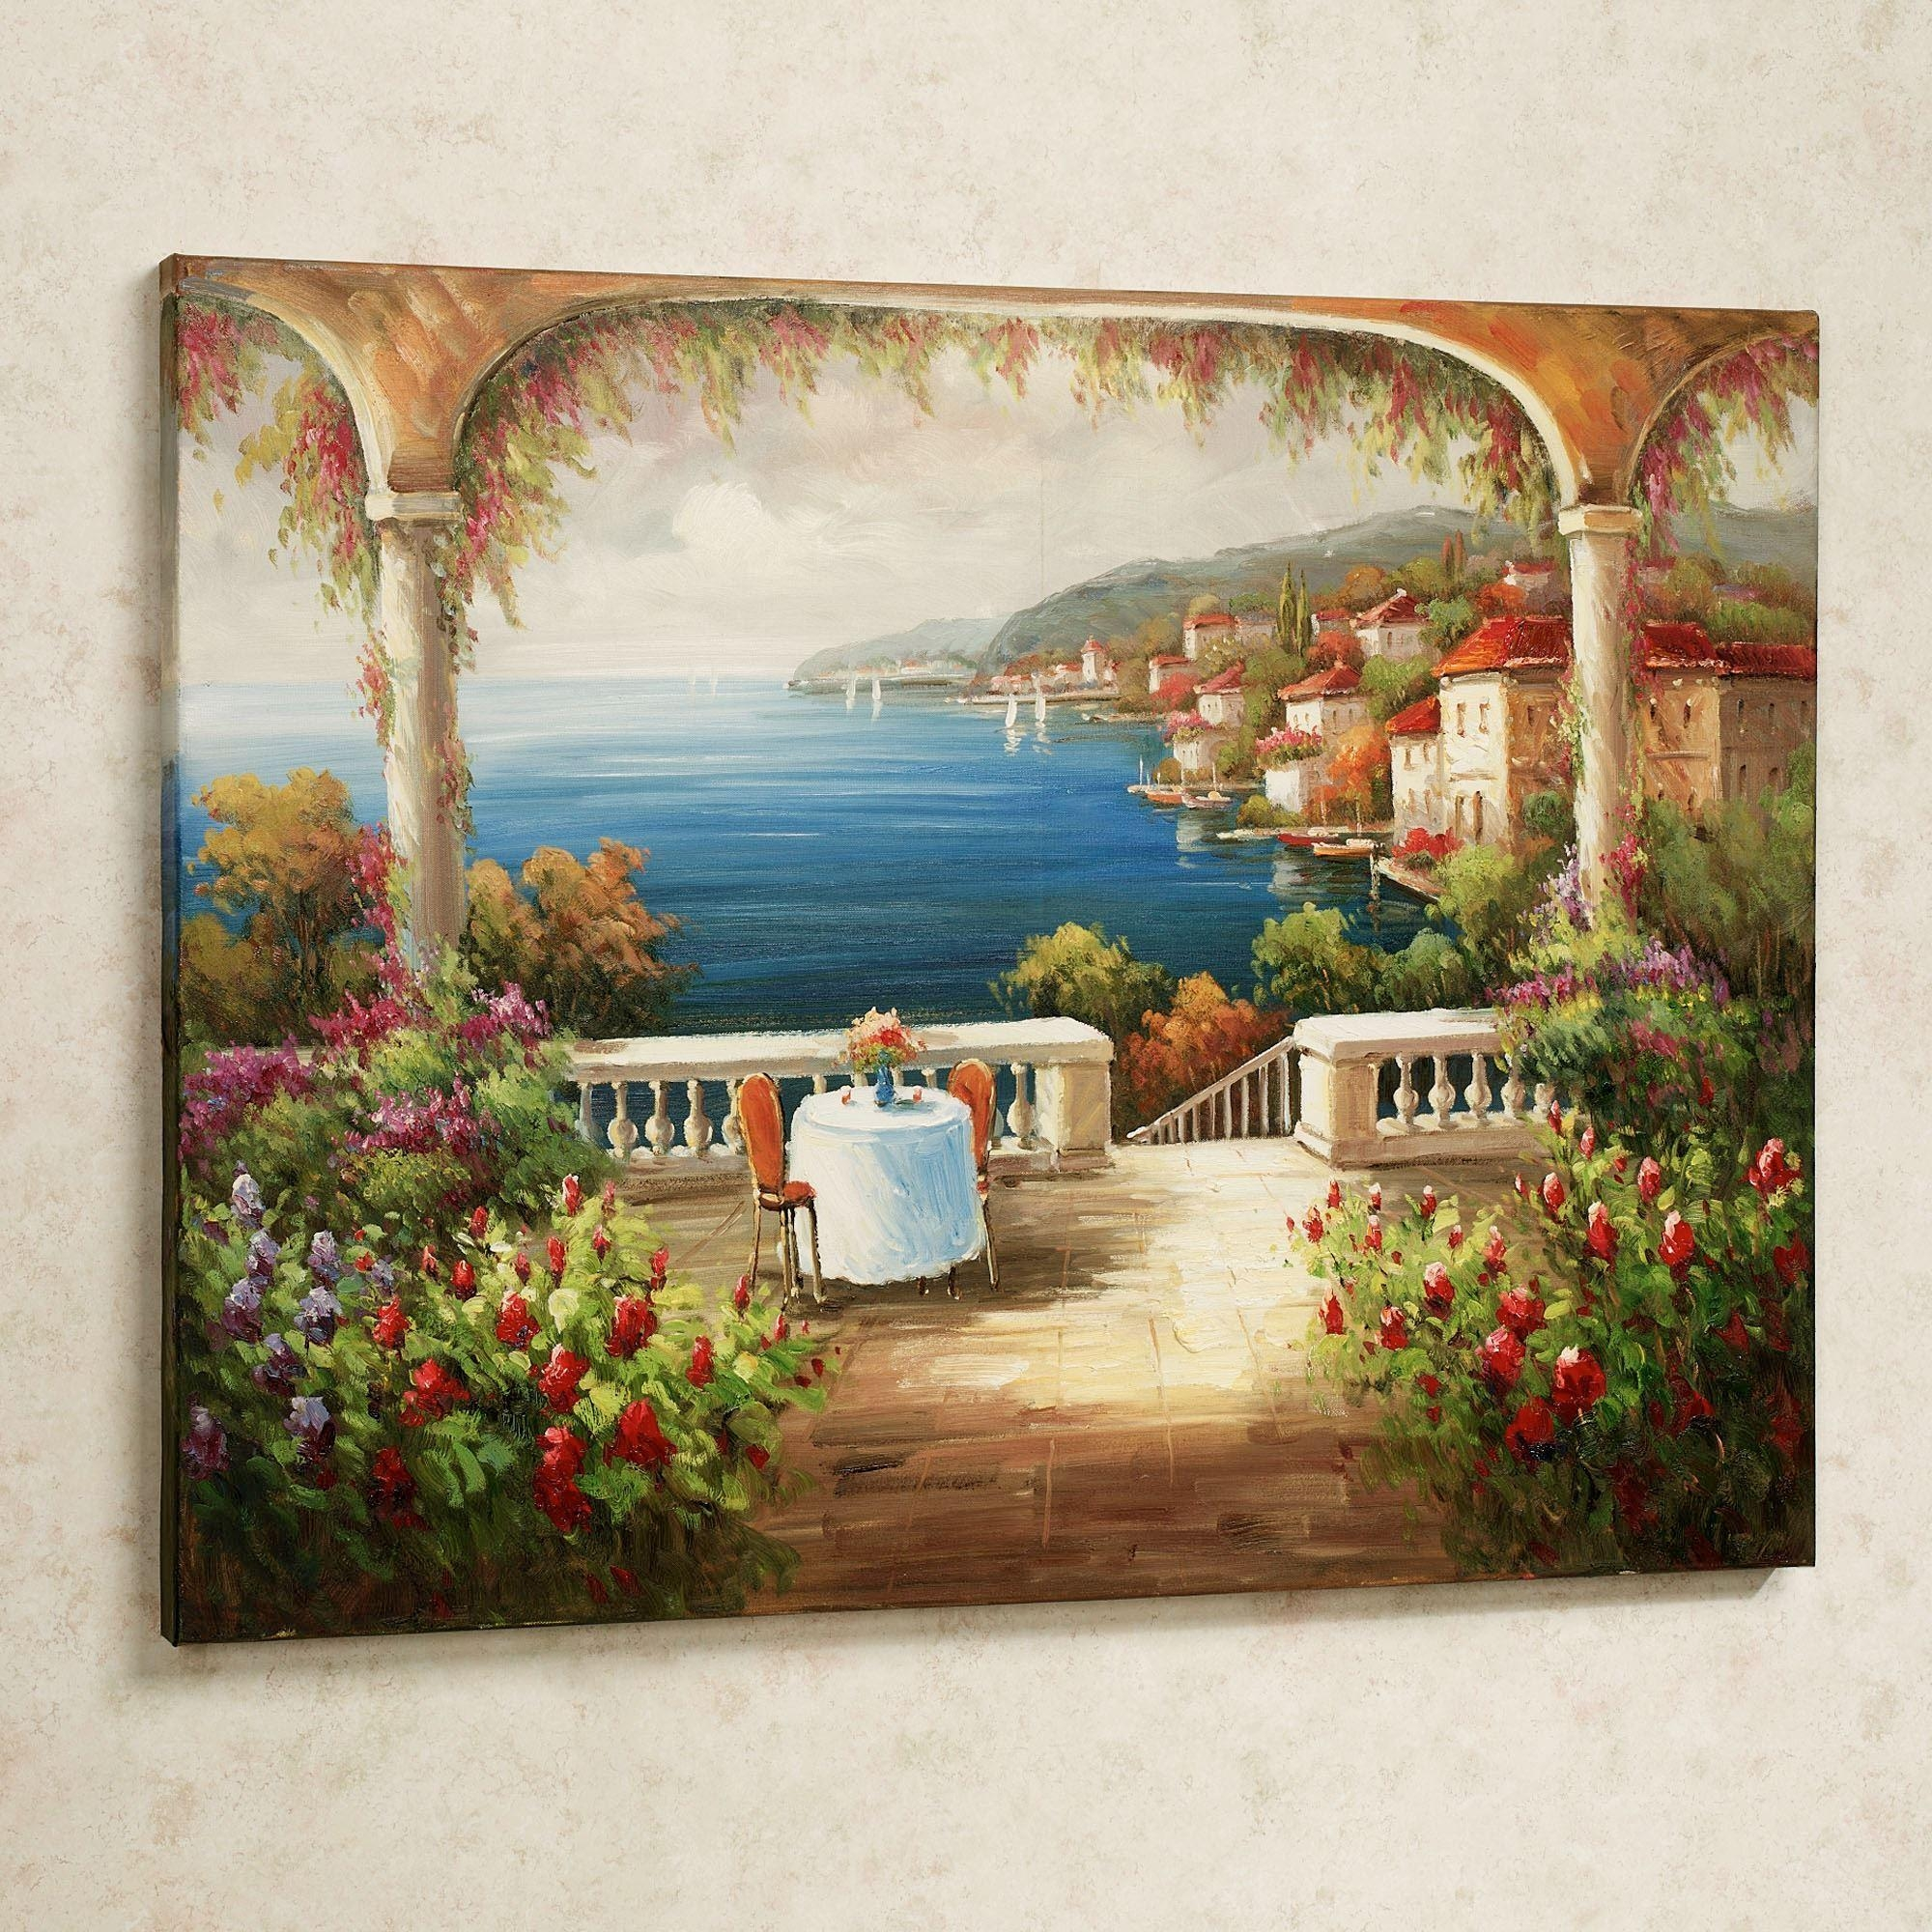 Kitchen : Cheap Artwork Bedroom Artwork Dining Room Wall Art Throughout Italian Bistro Wall Art (View 14 of 20)